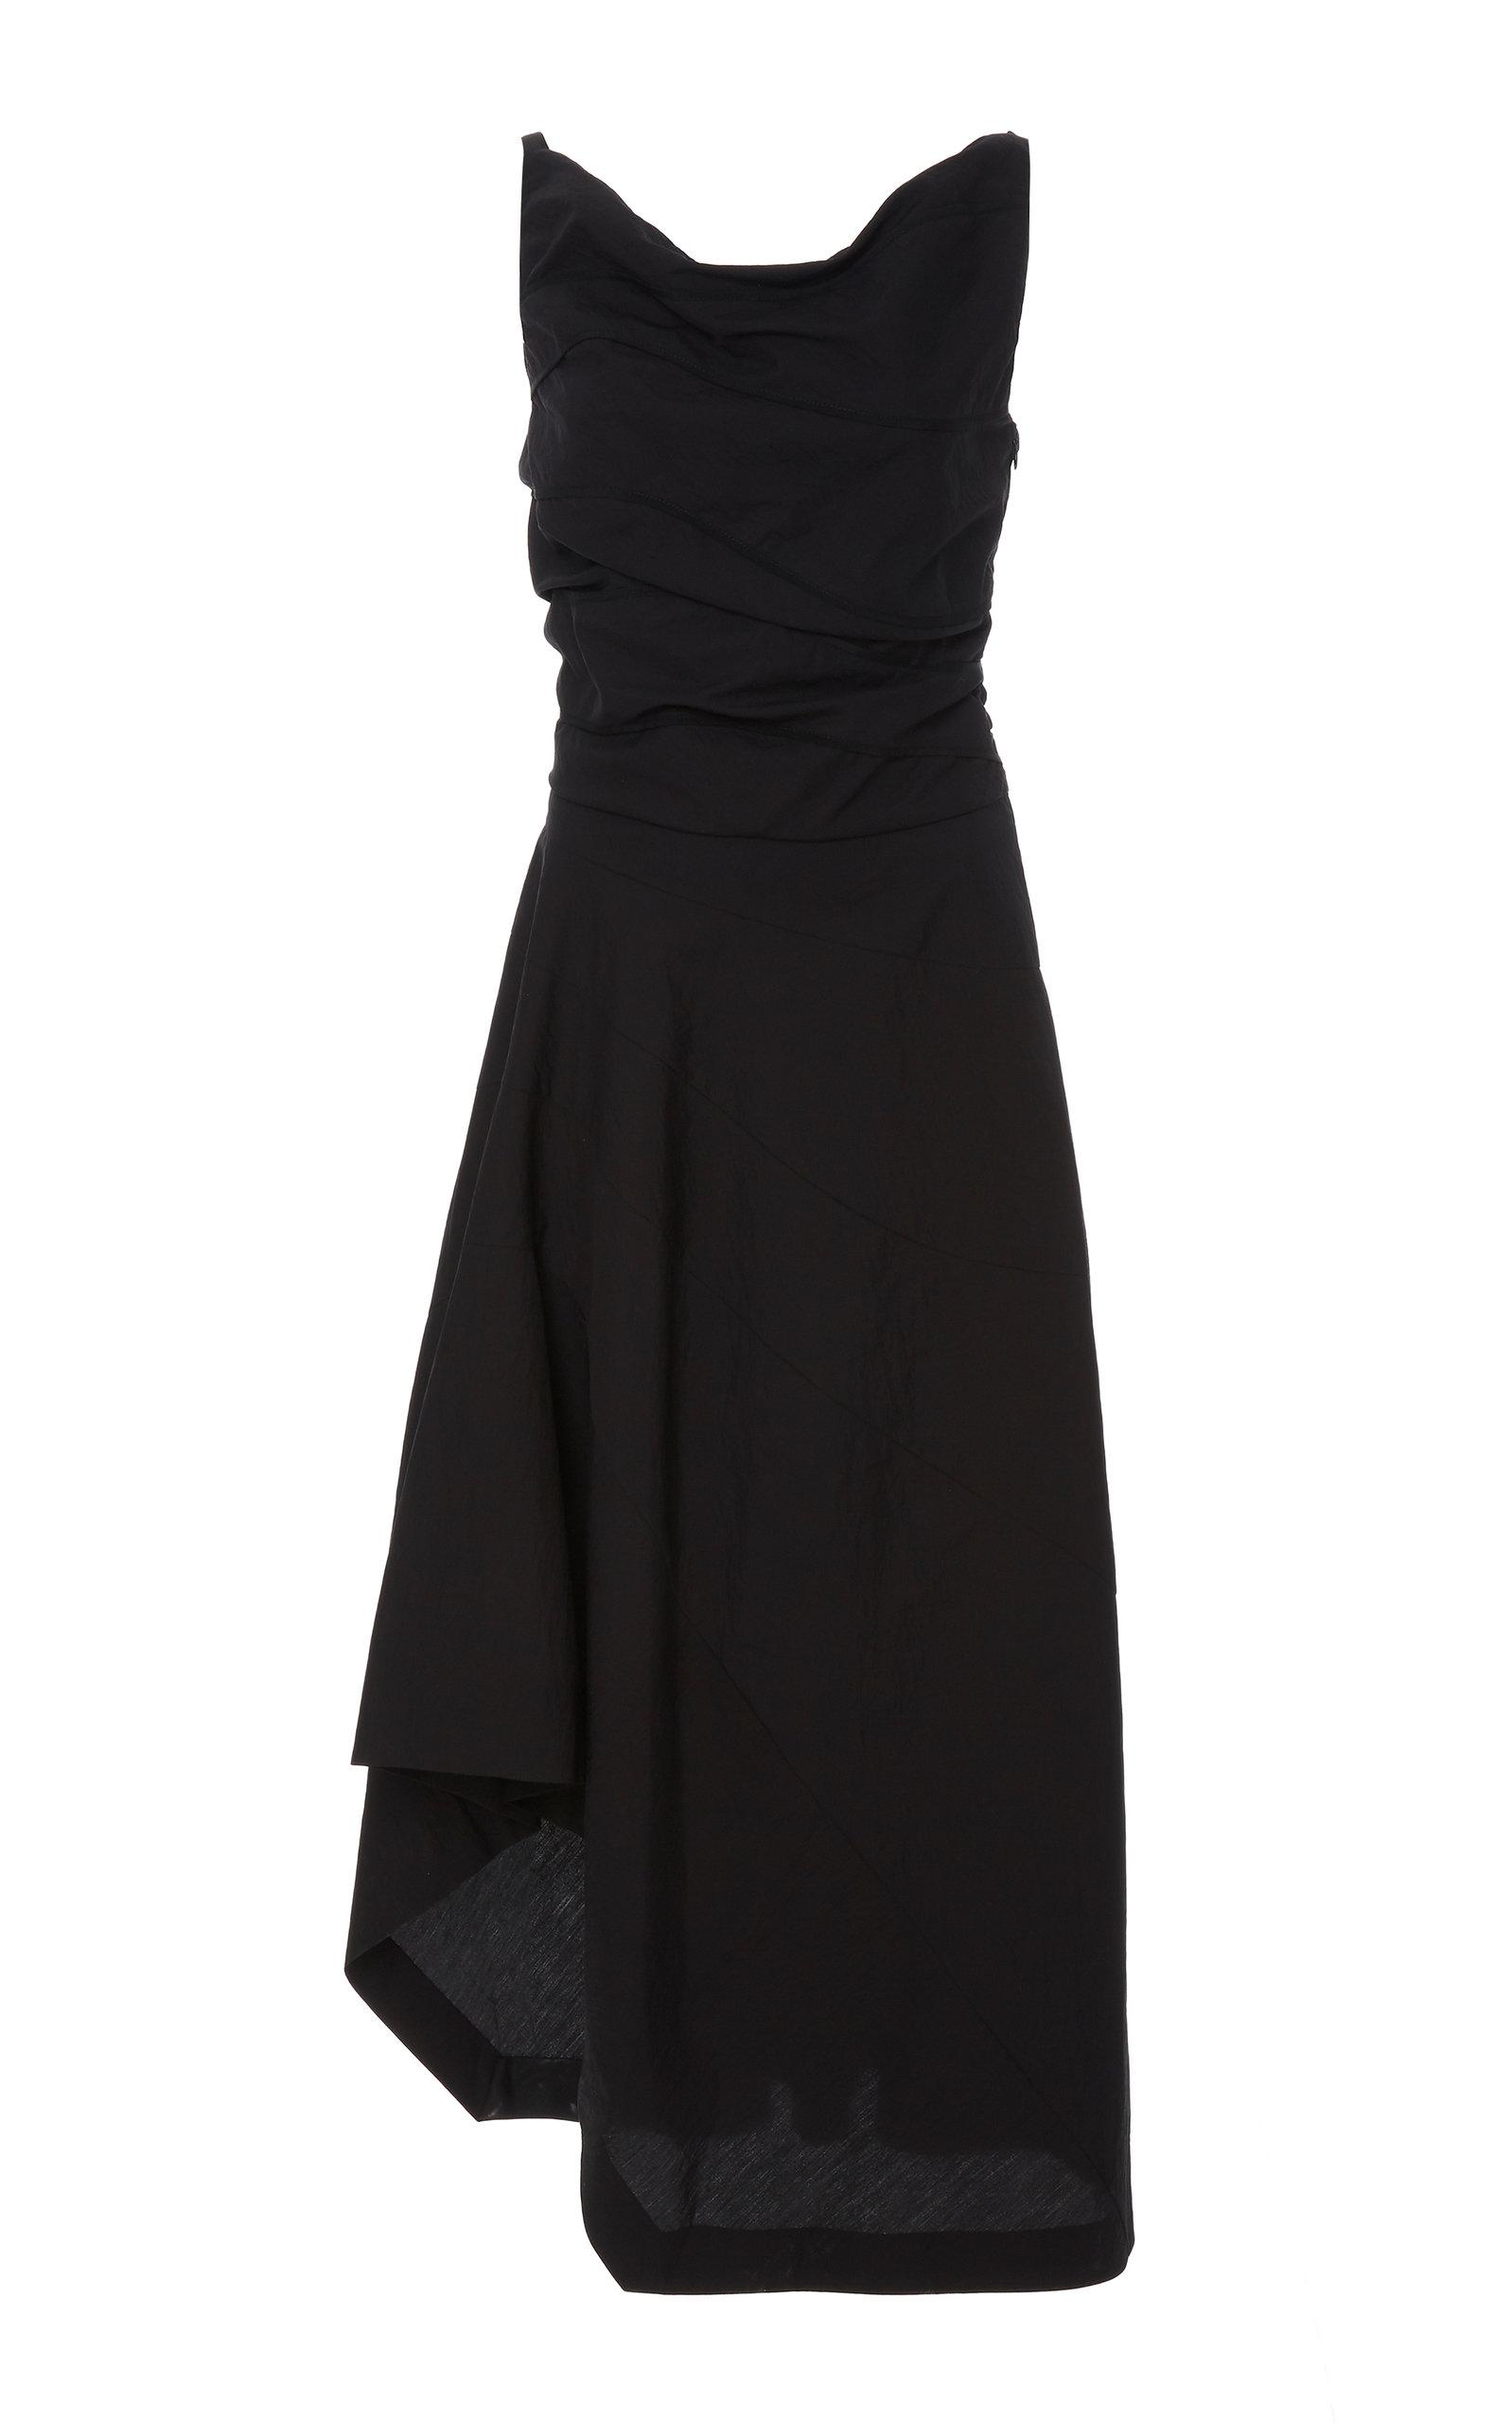 3b5566cfecc Narciso Rodriguez Textured Midi Dress In Black